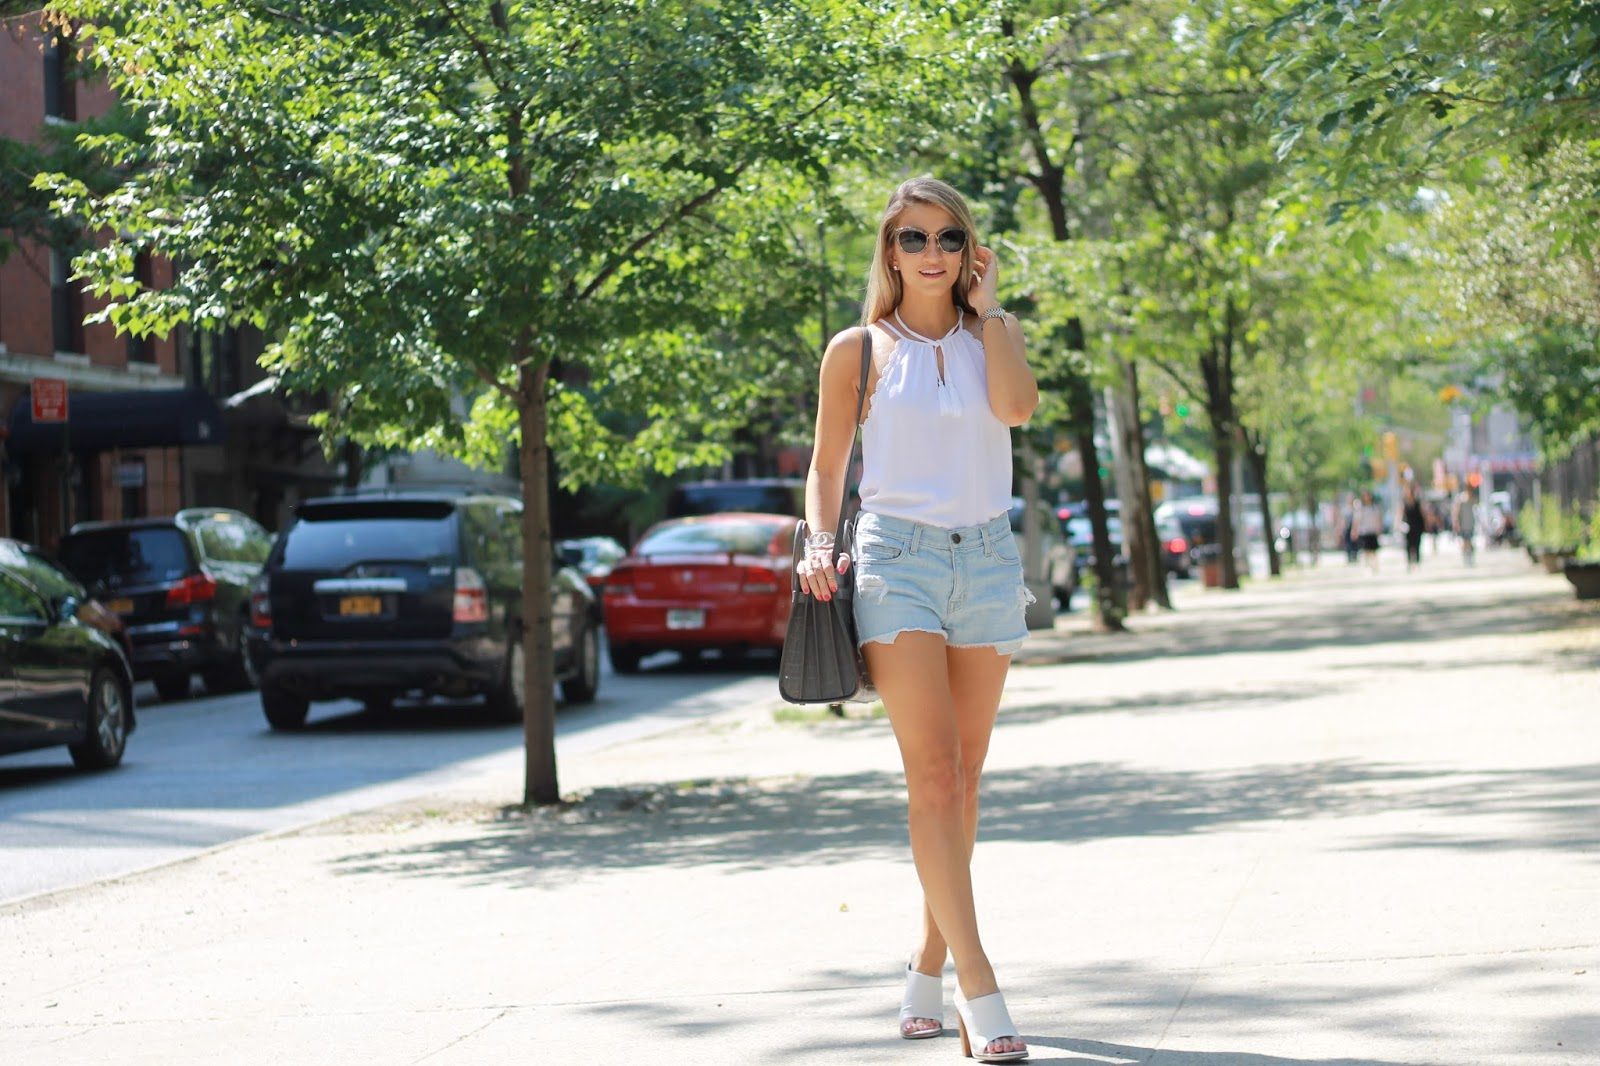 summer style 2015, nyc style blogger 2015